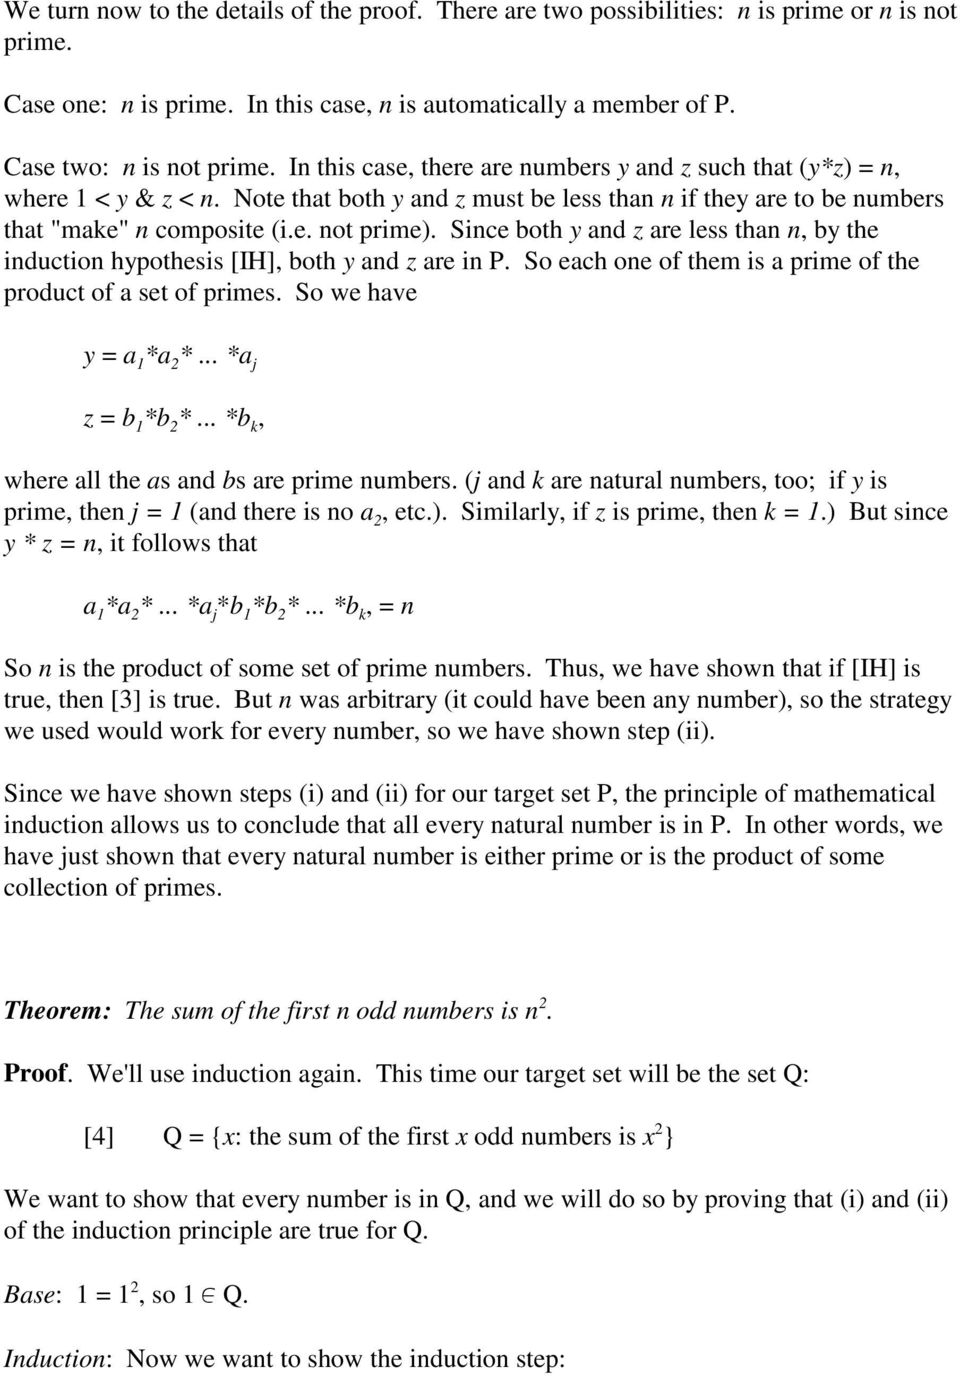 Since both y and z are less than n, by the induction hypothesis [IH], both y and z are in P. So each one of them is a prime of the product of a set of primes. So we have y = a 1 *a 2 *.